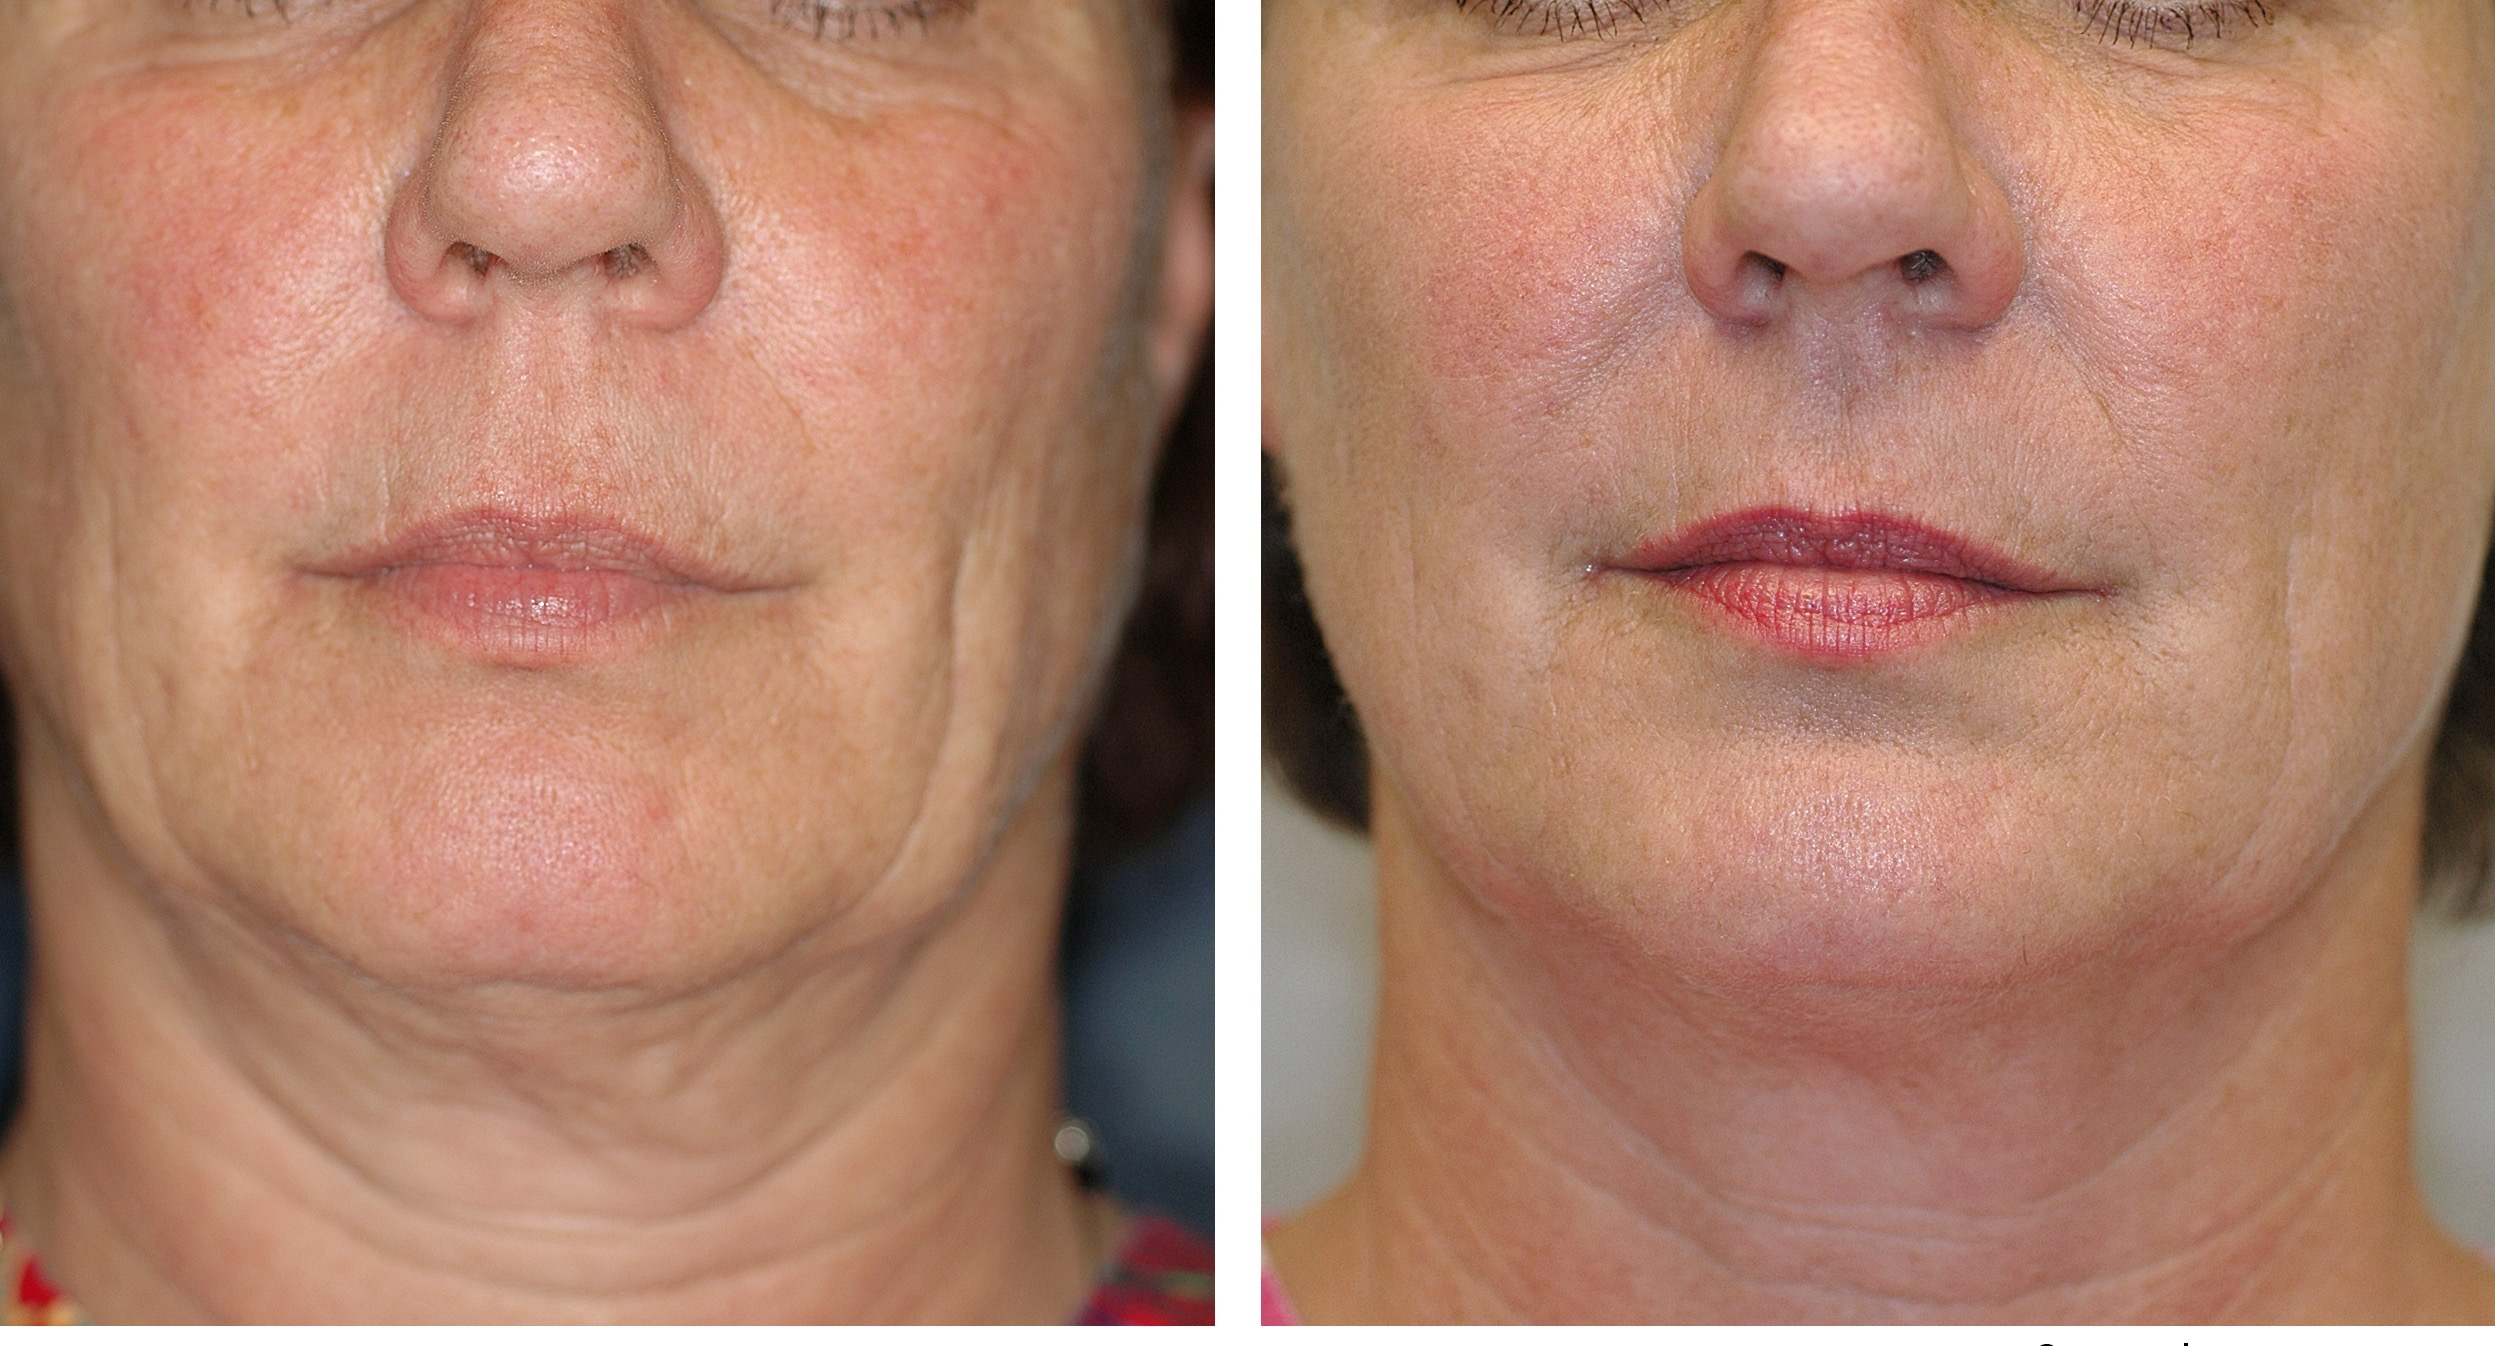 Thermage for non-surgical face lifts and to tighten loose skin was the no 1  choice to tighten skin and saggy neck at Precision Aesthetics in New York  2015 Q1